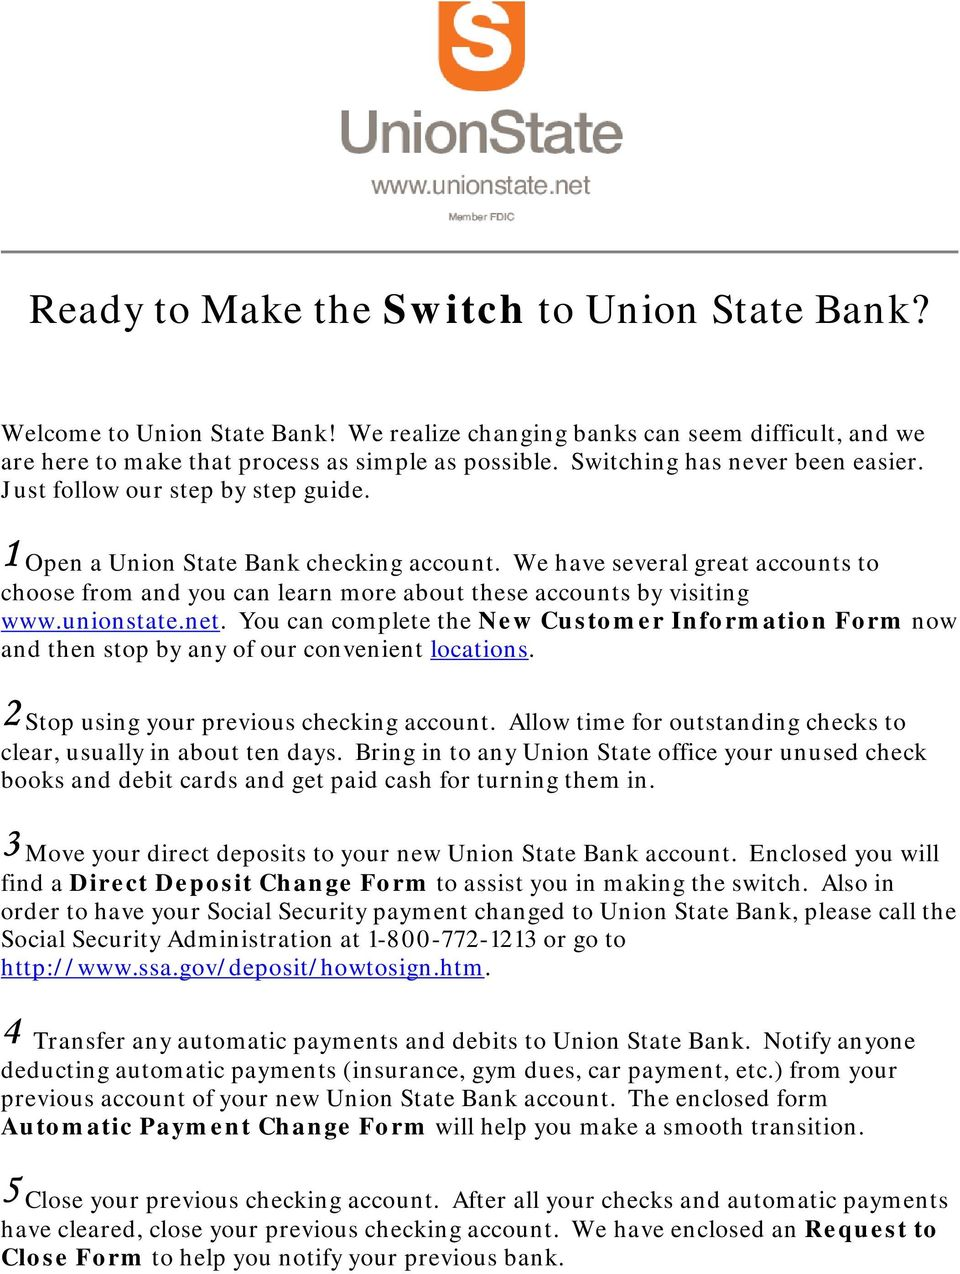 We have several great accounts to choose from and you can learn more about these accounts by visiting www.unionstate.net.